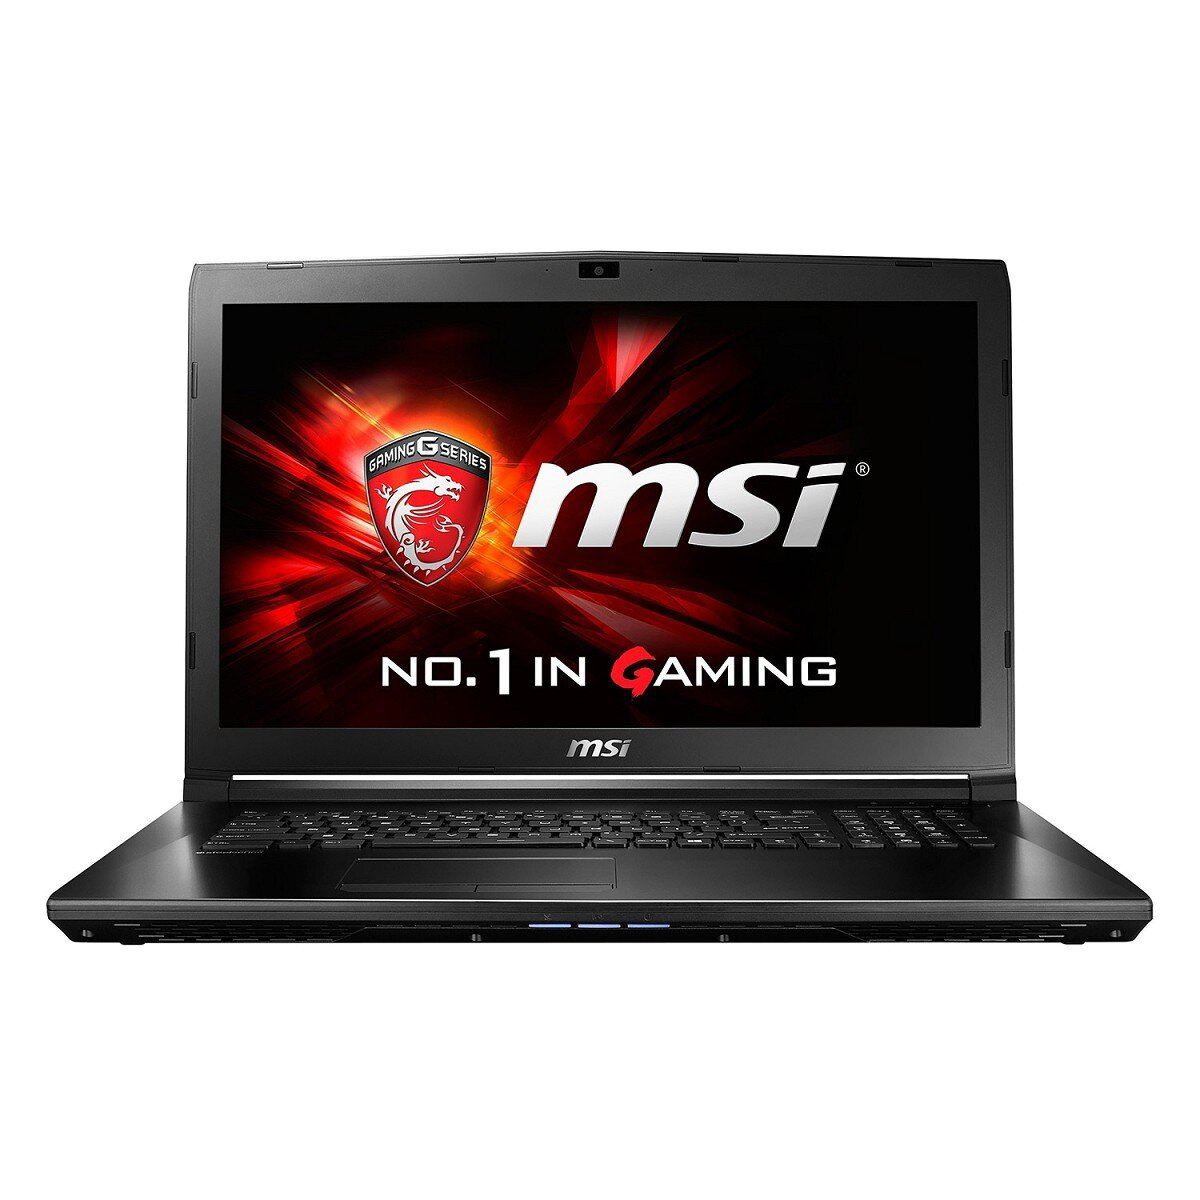 Laptop MSI GL72 7QF 1023XVN - Intel Core i7 7700HQ, RAM 8GB, HDD 1TB, Intel Nvidia GTX960 2GB DDR5, 17.3inch